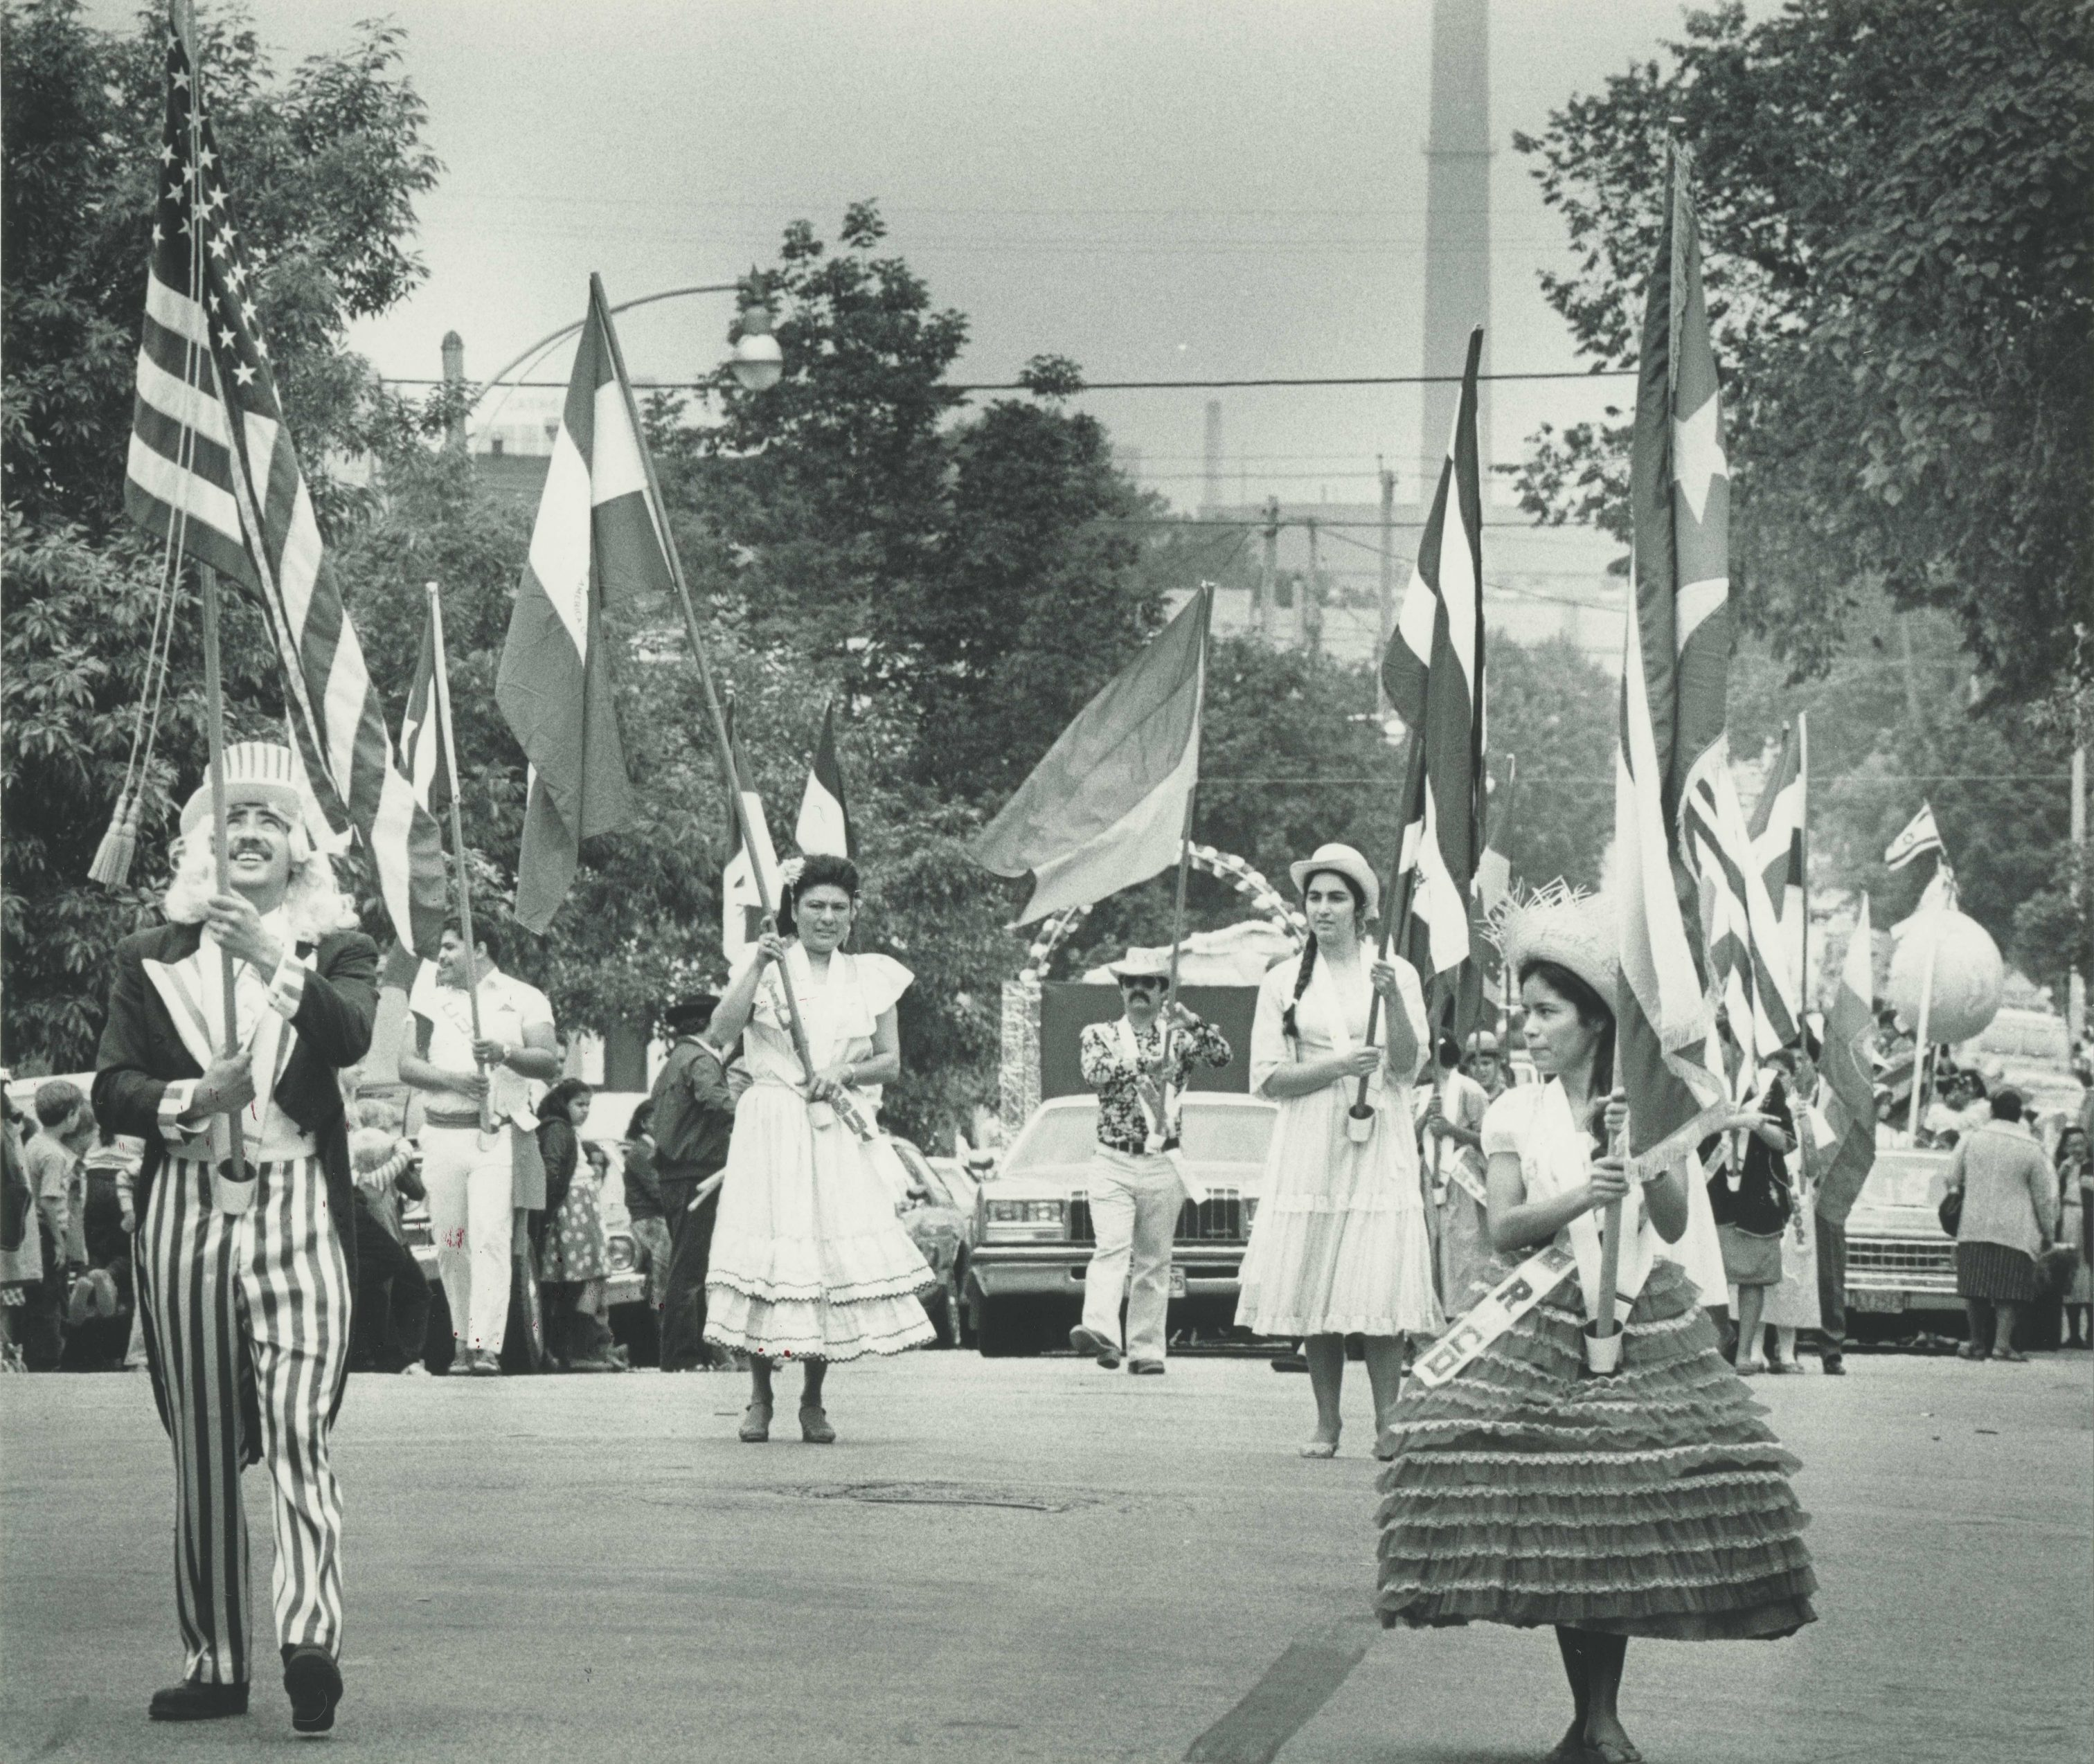 Men and women wearing costumes and carrying flags parade down the street at part of Mexican Fiesta in 1984.